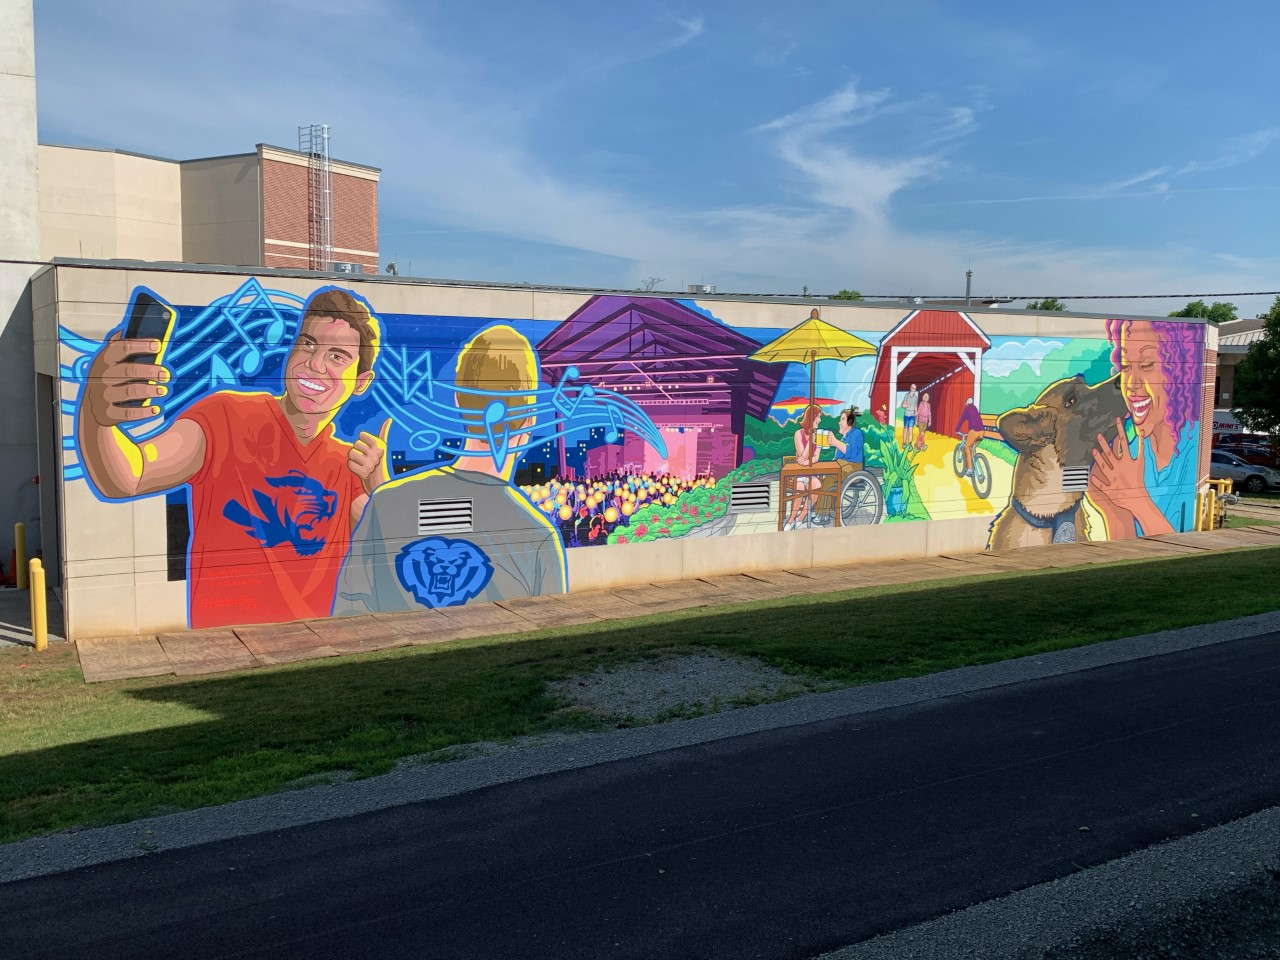 a mural of a person taking a selfie on their phone, a person with a school logo on their shirt, a concert venue with people and a covered bridge